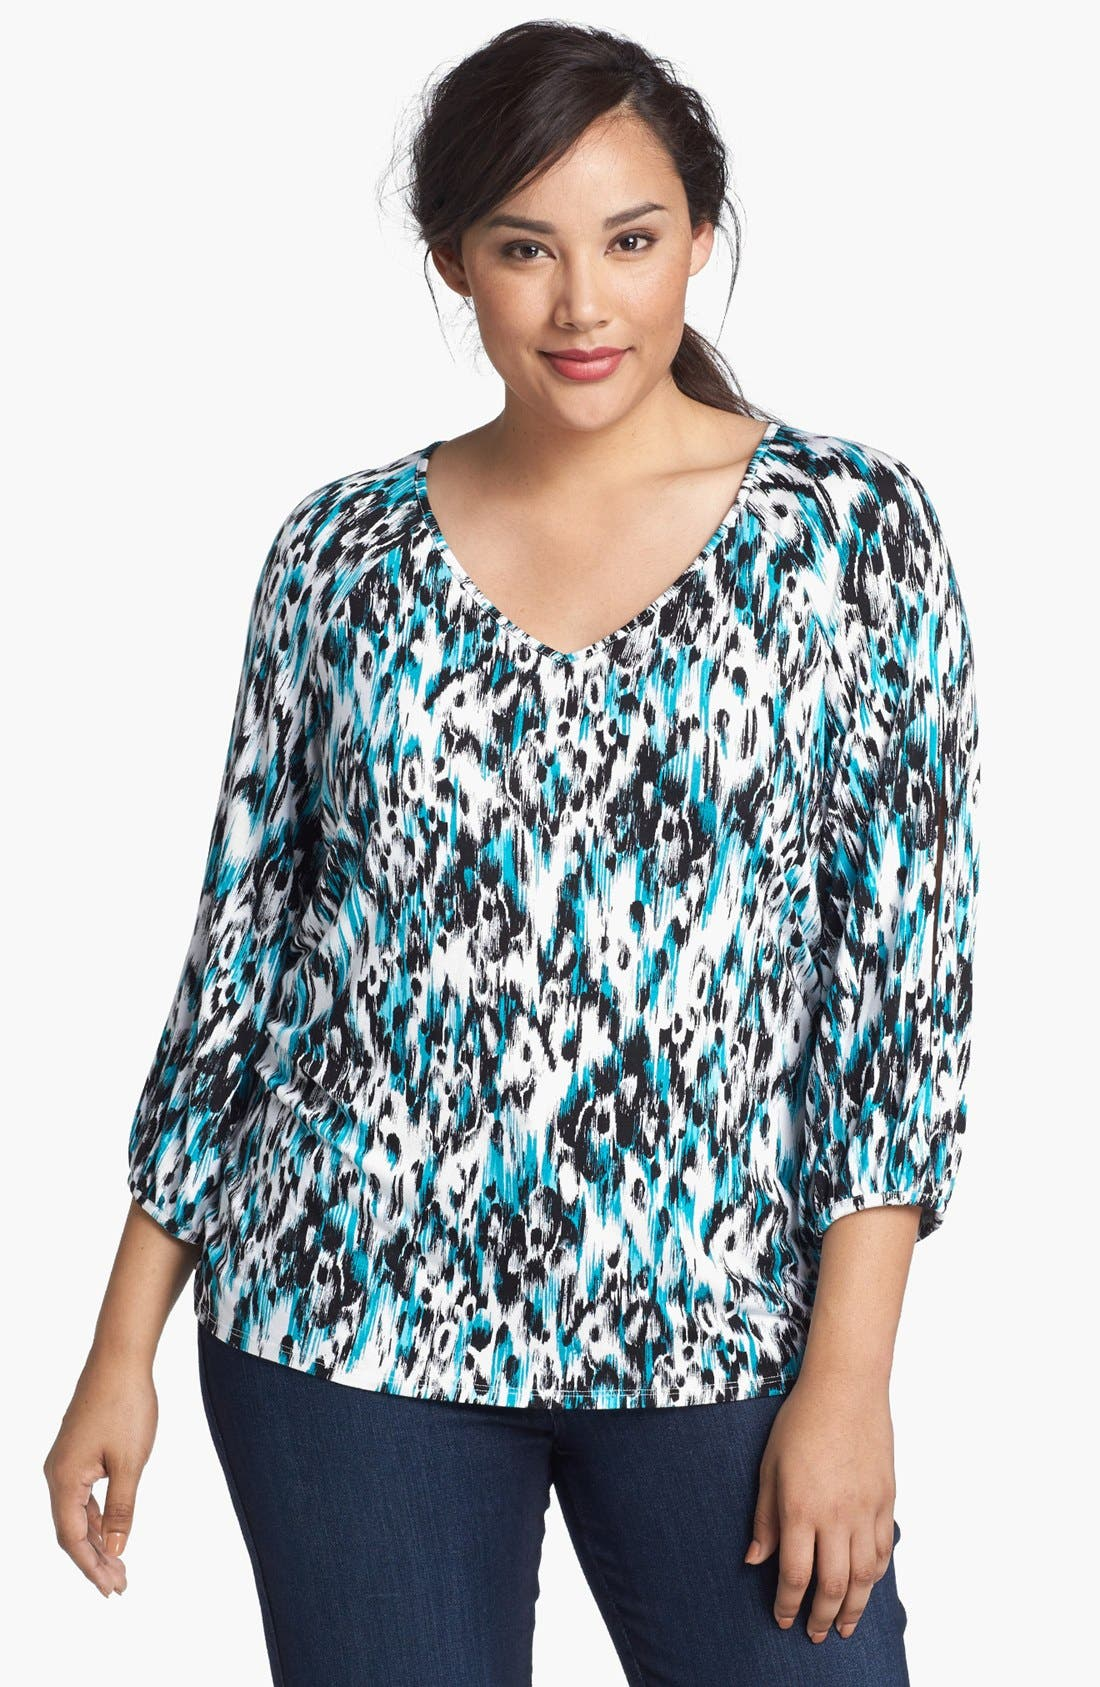 Alternate Image 1 Selected - Sejour 'Siro' Print V-Neck Top (Plus Size)